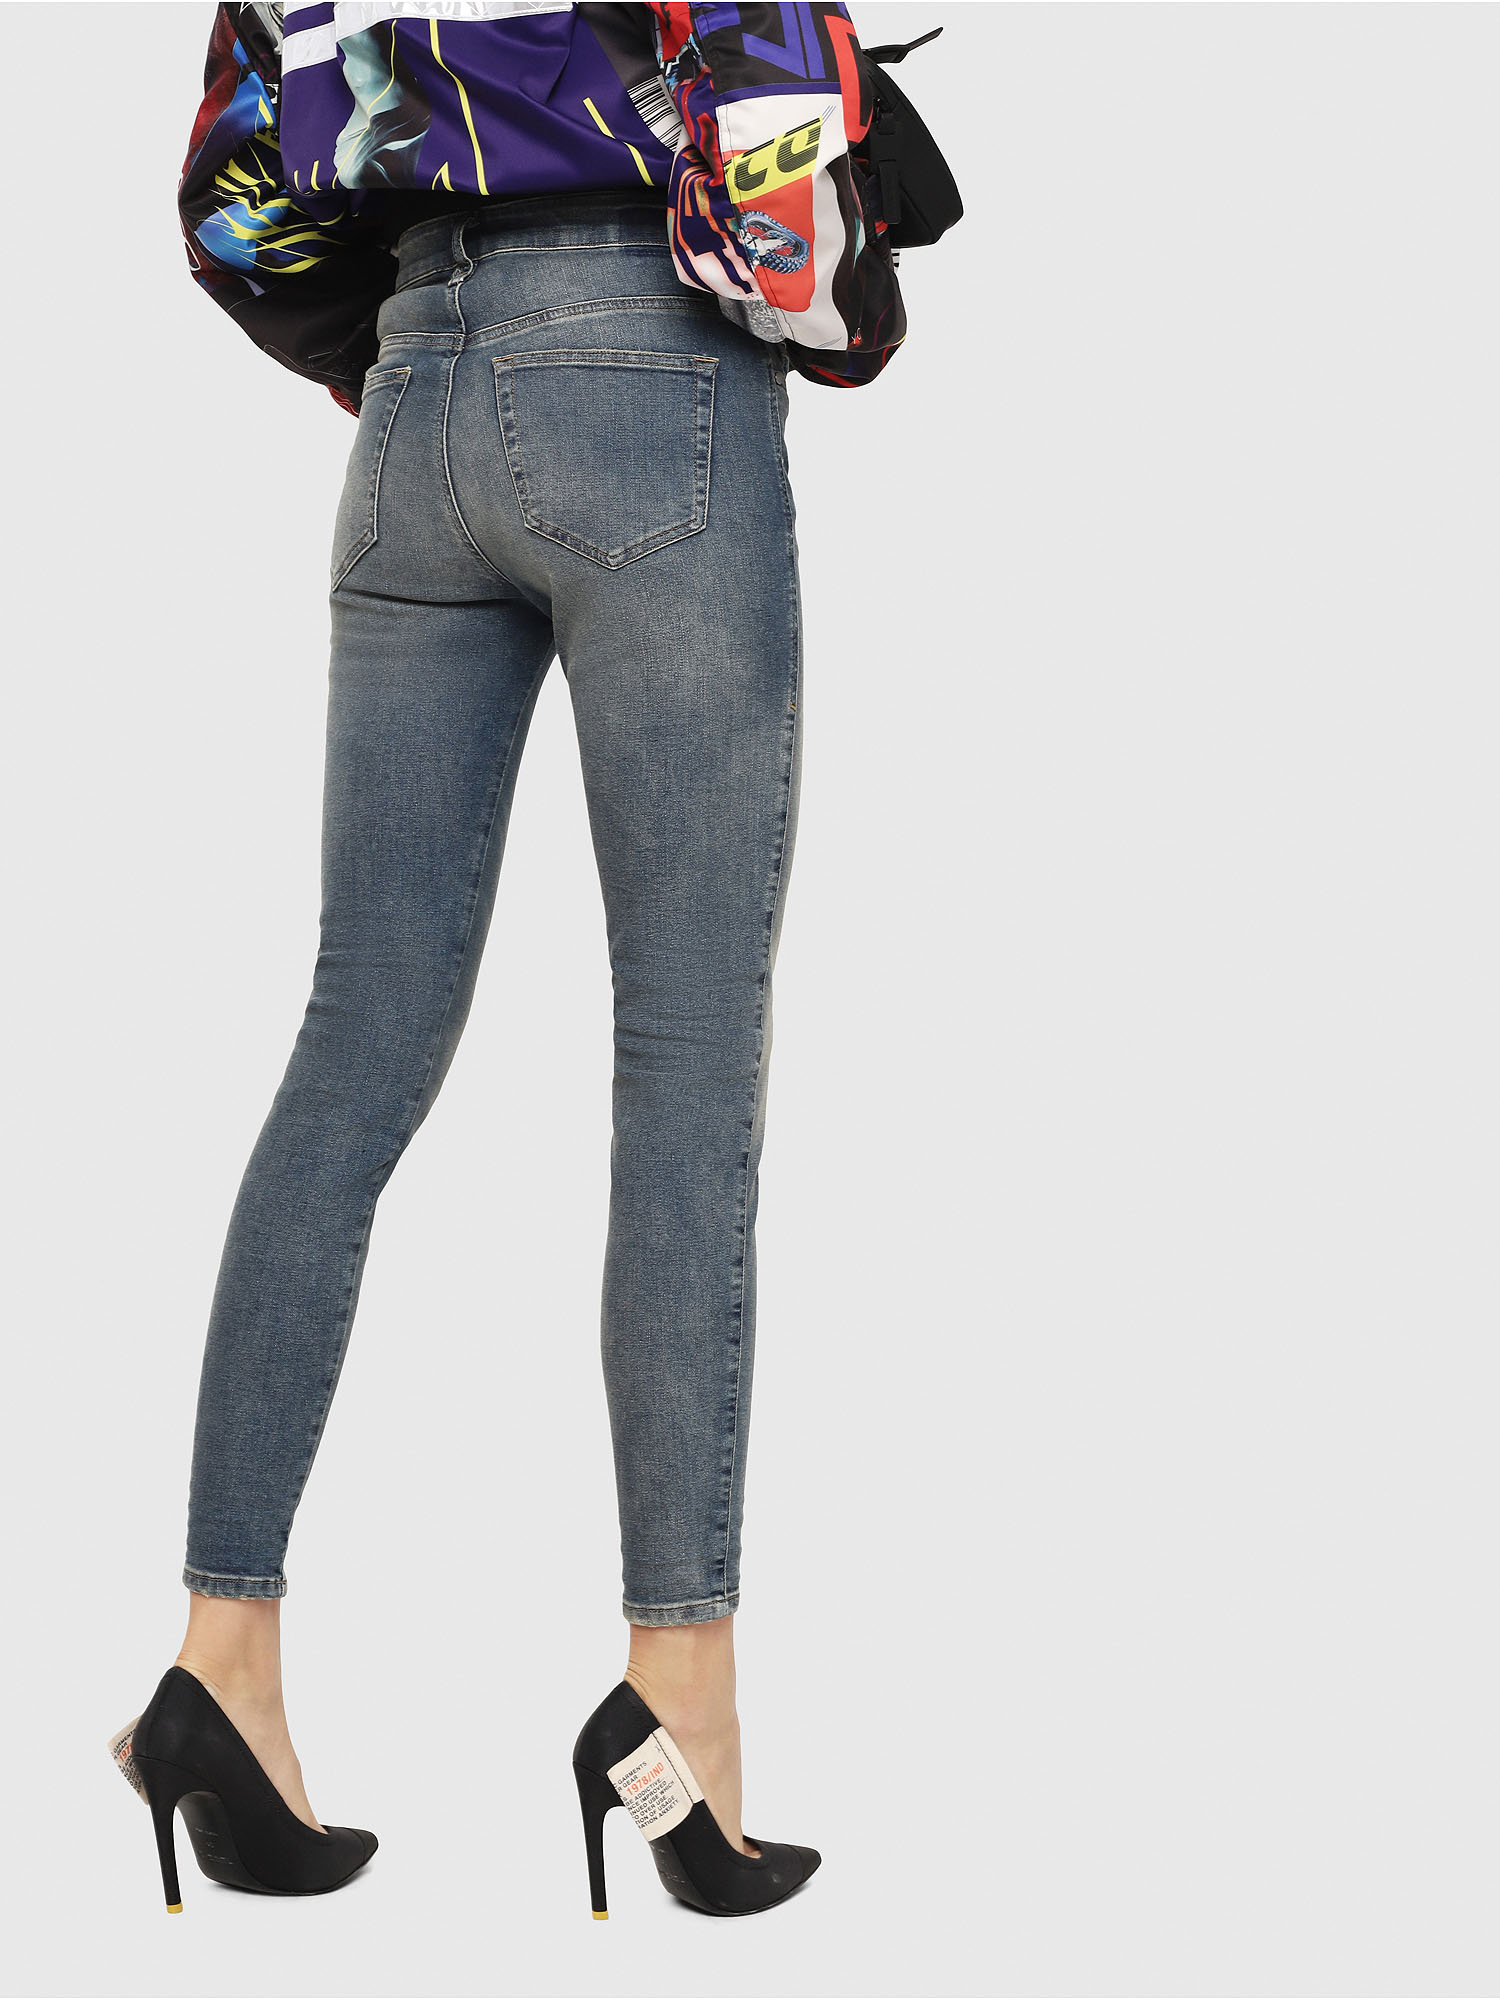 Diesel - Slandy High 085AZ,  - Jeans - Image 2